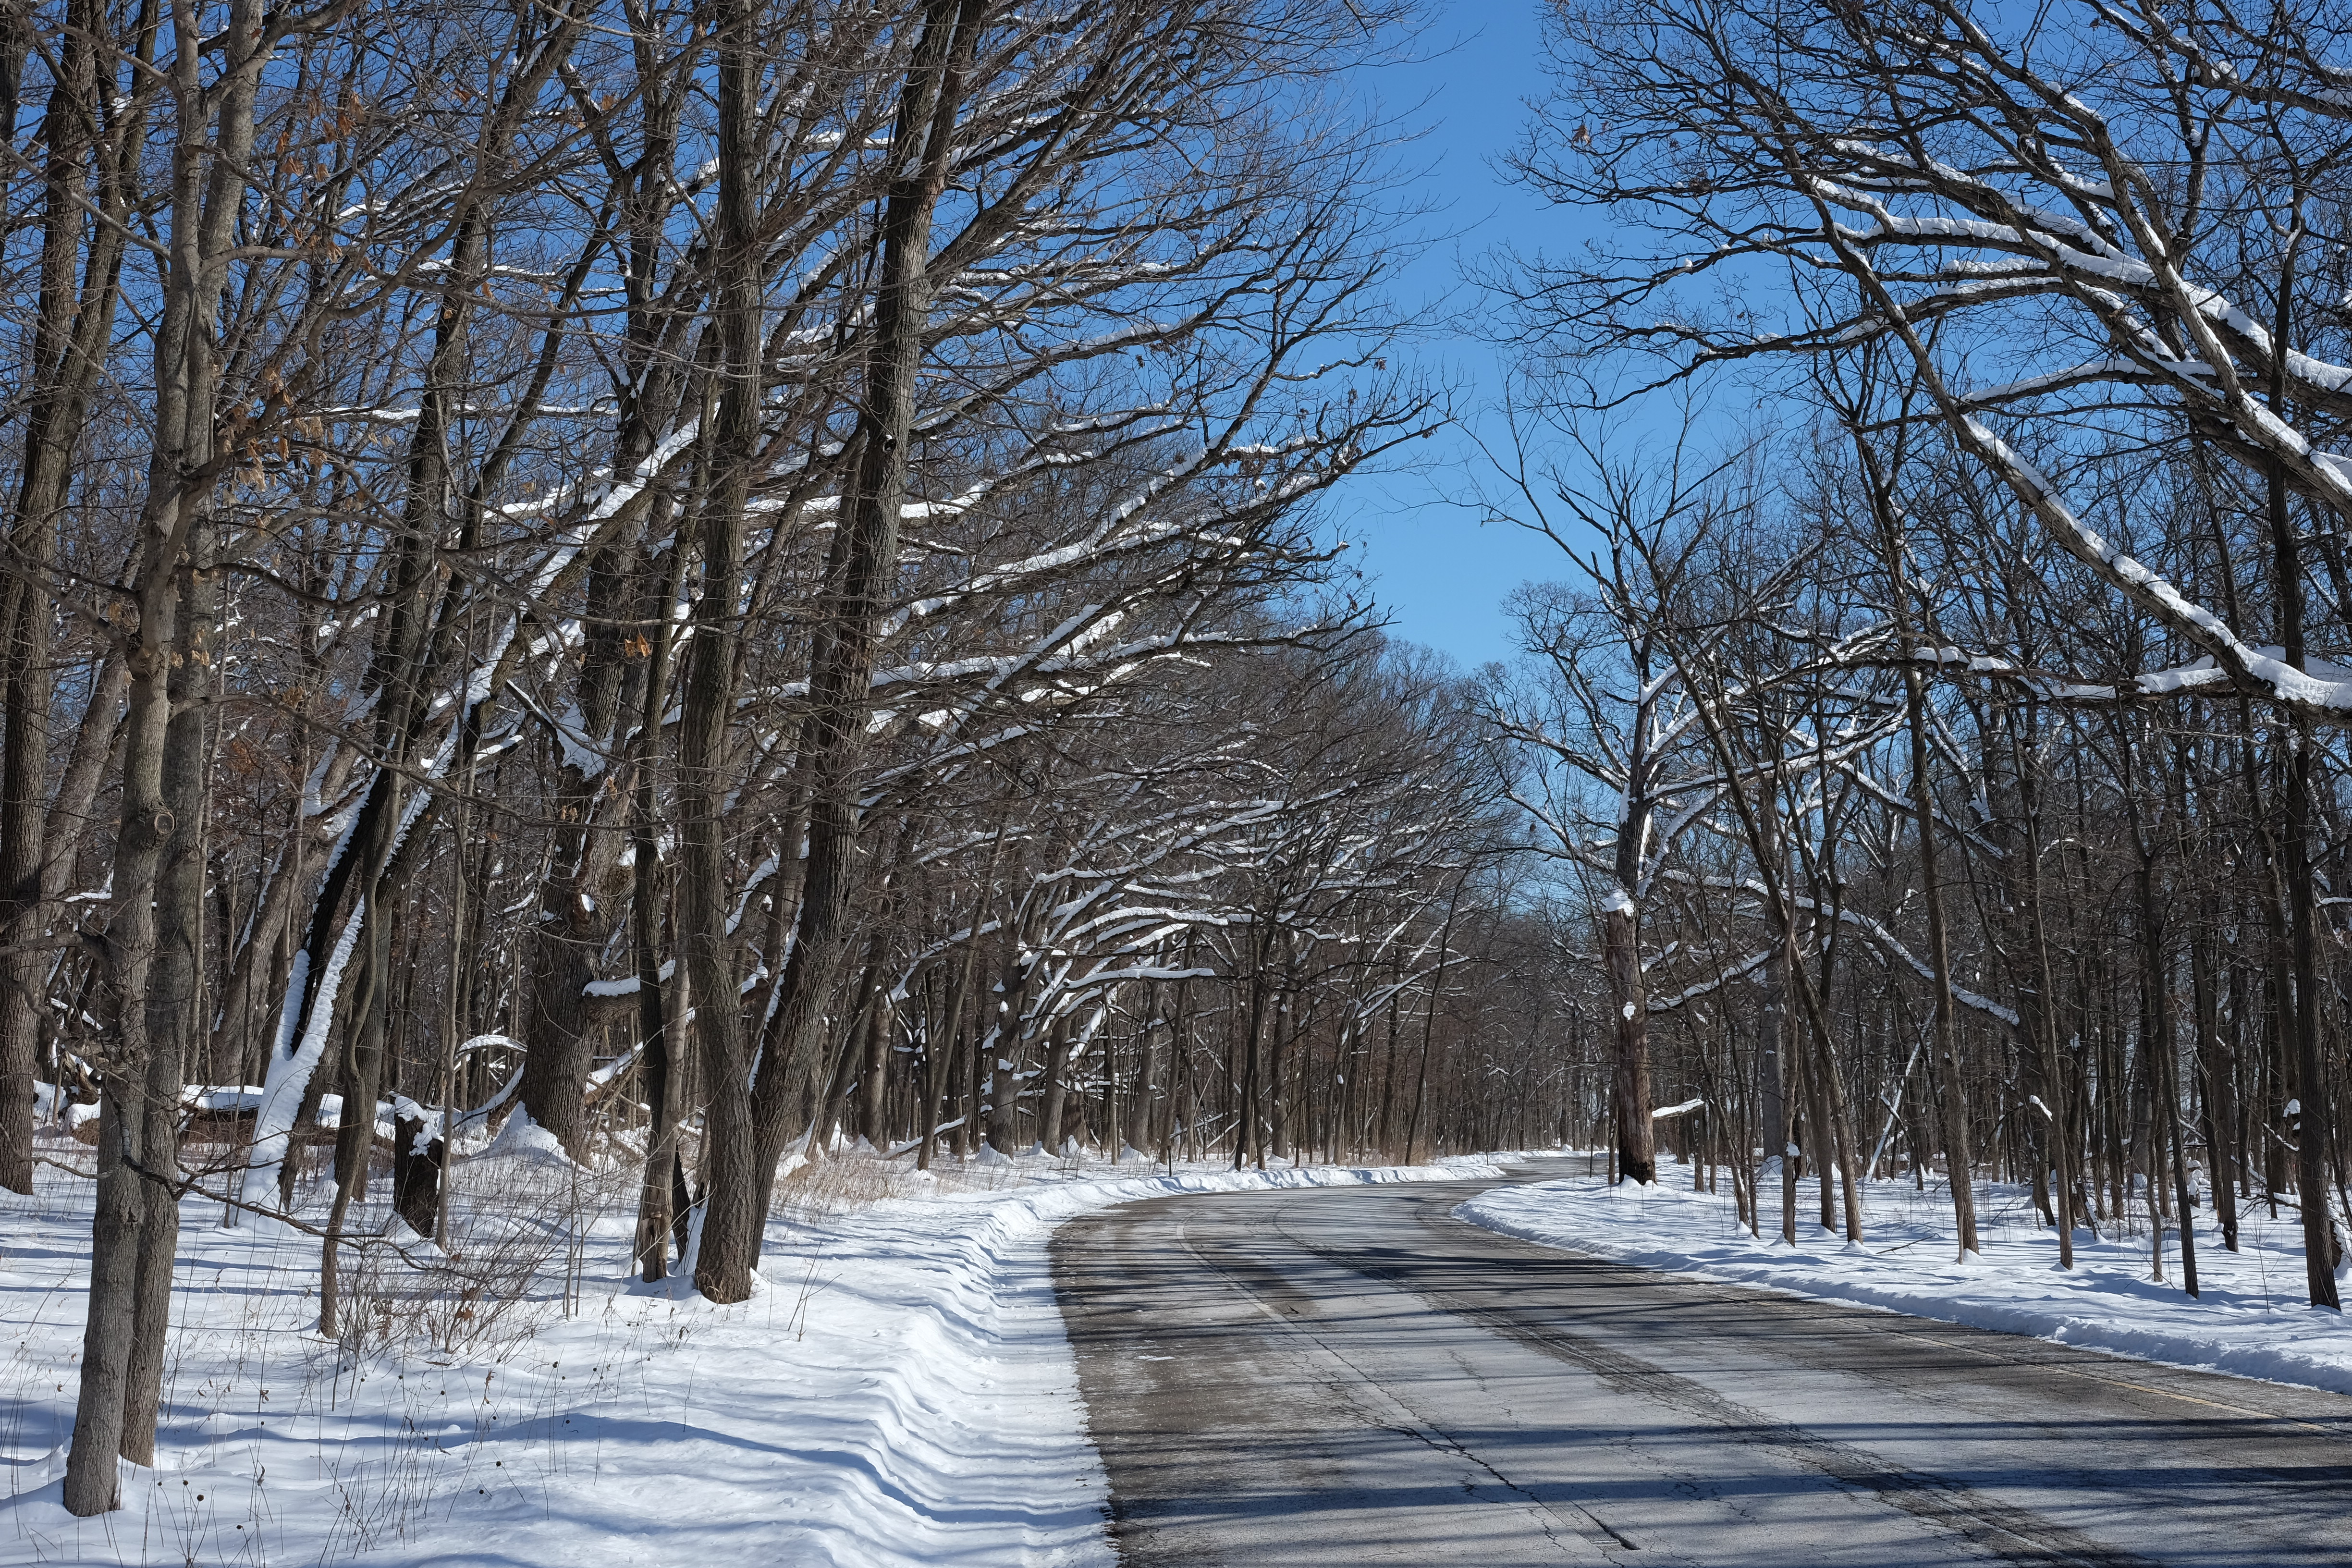 (1/2) Snow sharpens the silhouettes of trees in winter. Photo: Daniel Munger, winter, woods, snow, tree, nature, landscape